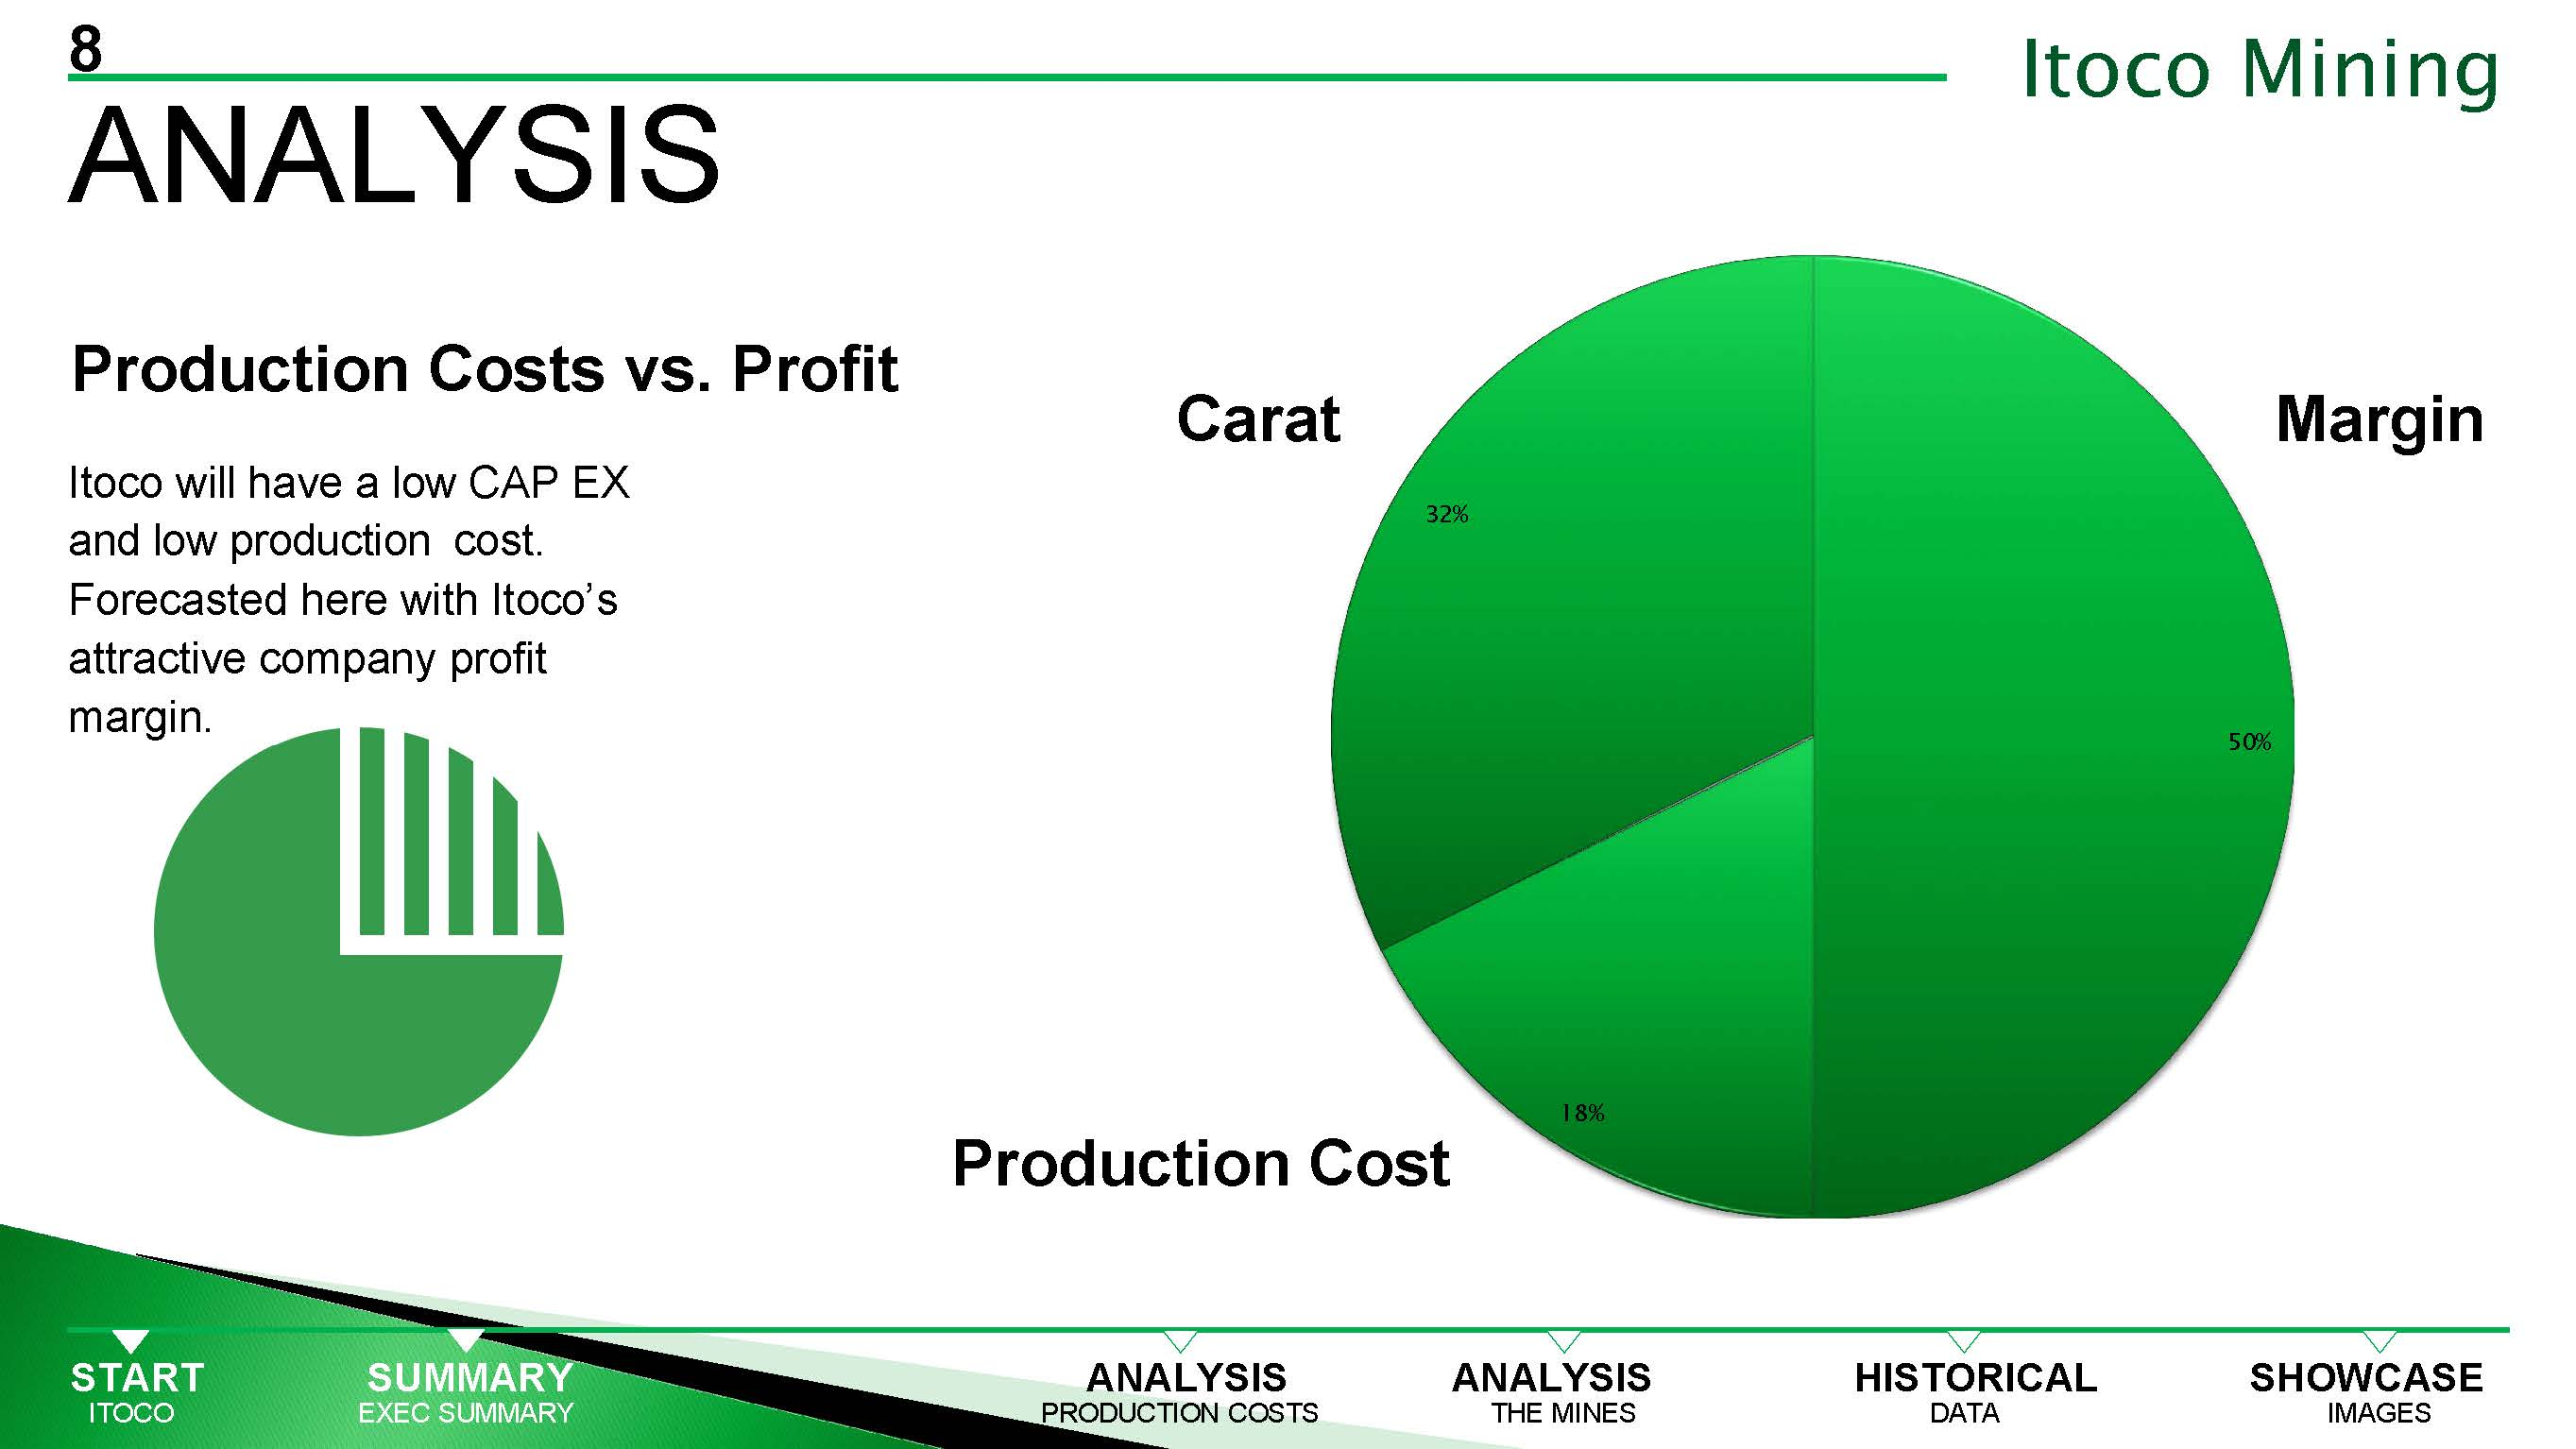 production and cost analysis Chocolate industry analysis 2018 - cost & trends over 70% of cocoa production takes place in west african senior care industry analysis 2018 - cost & trends.